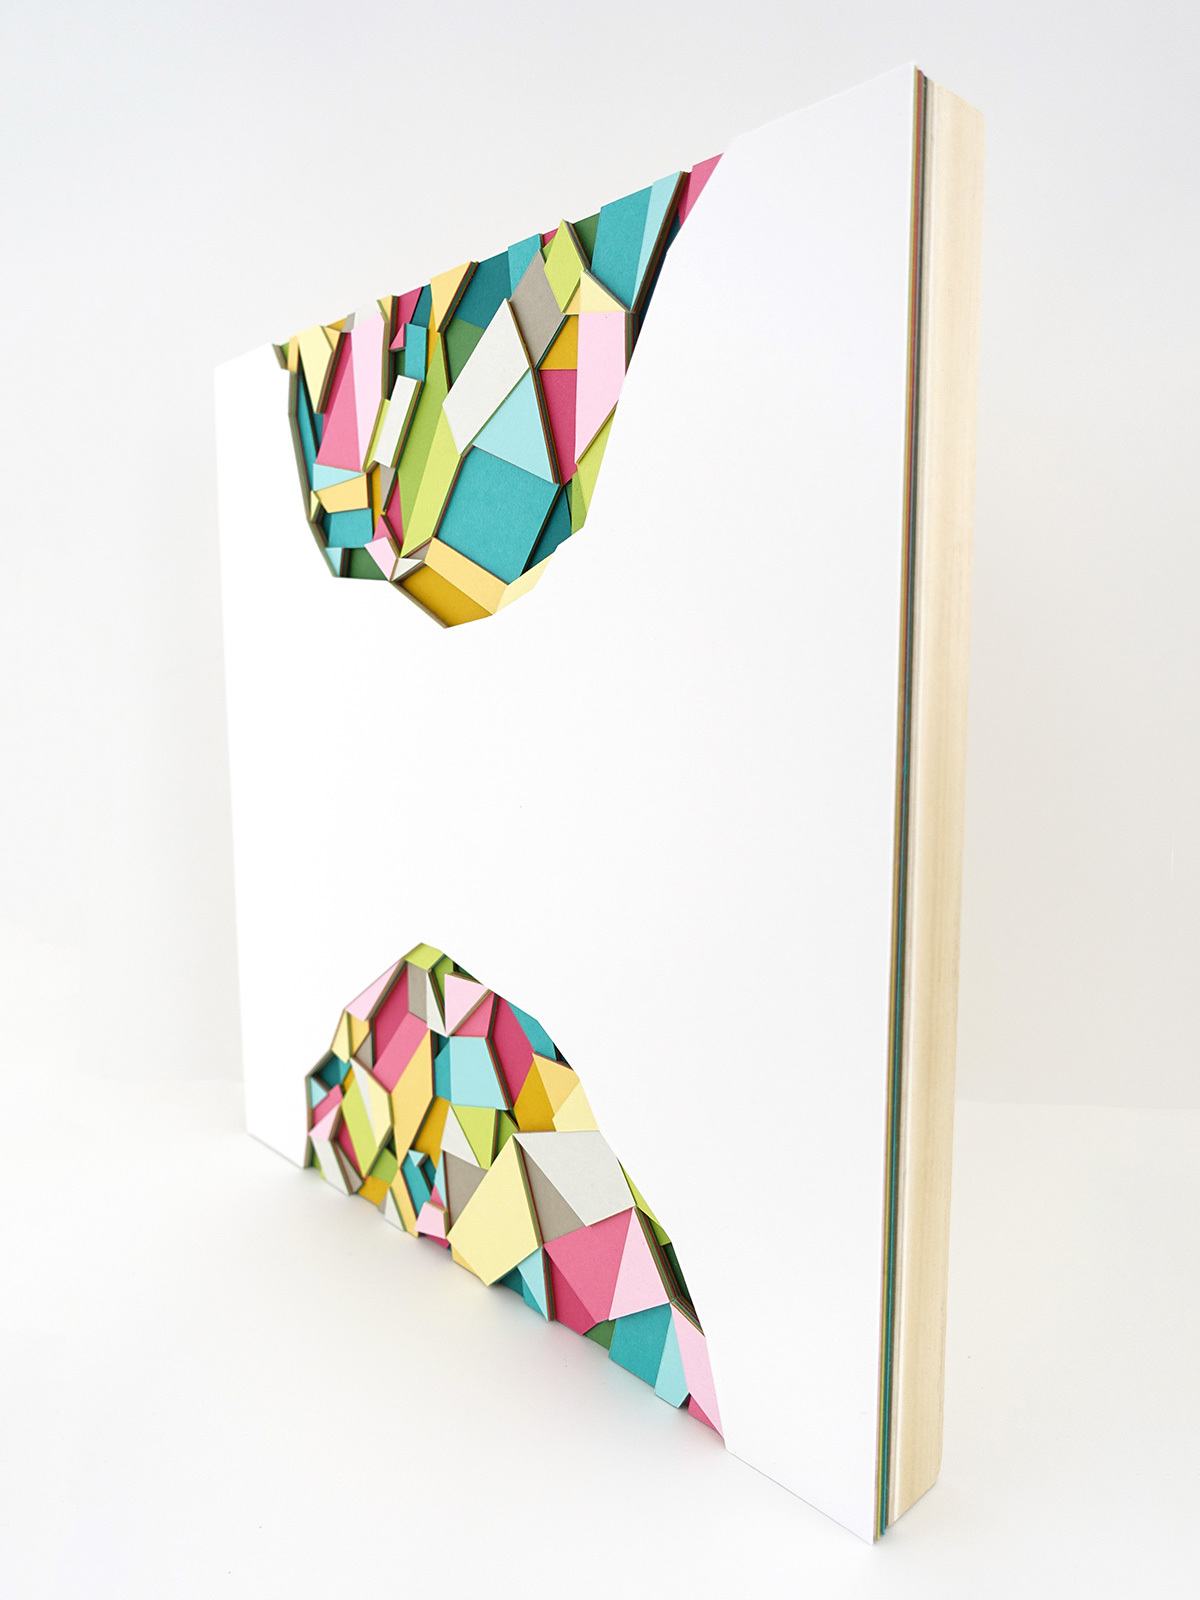 Huntz Liu Creates Geometric Paper Reliefs Reminiscent of Cut Diamonds - Portal